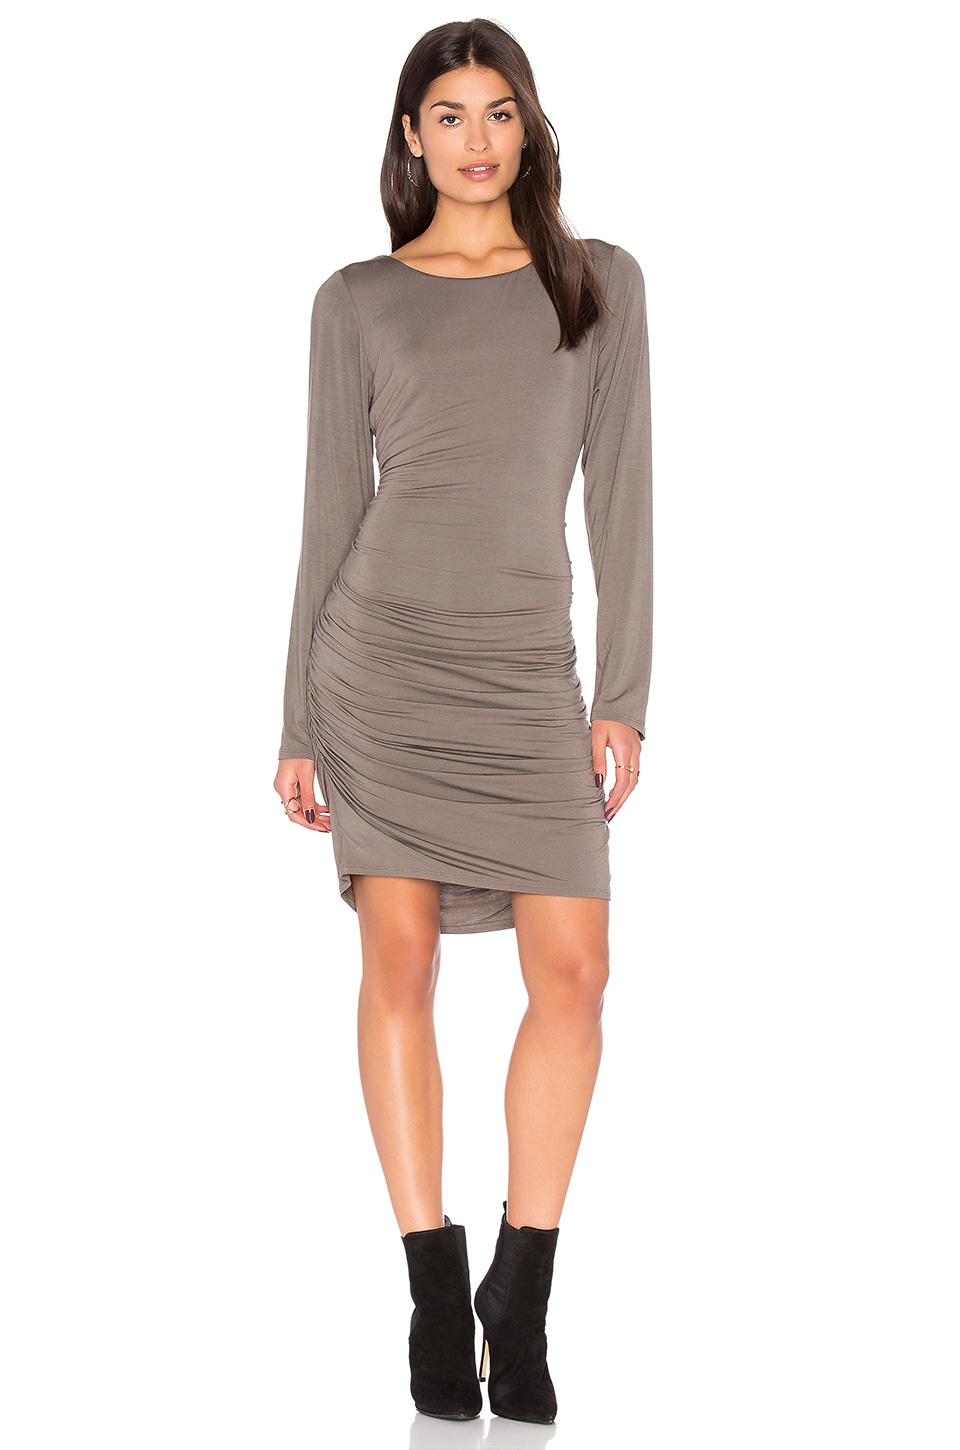 Shirred Side Scoop Back Dress by Heather